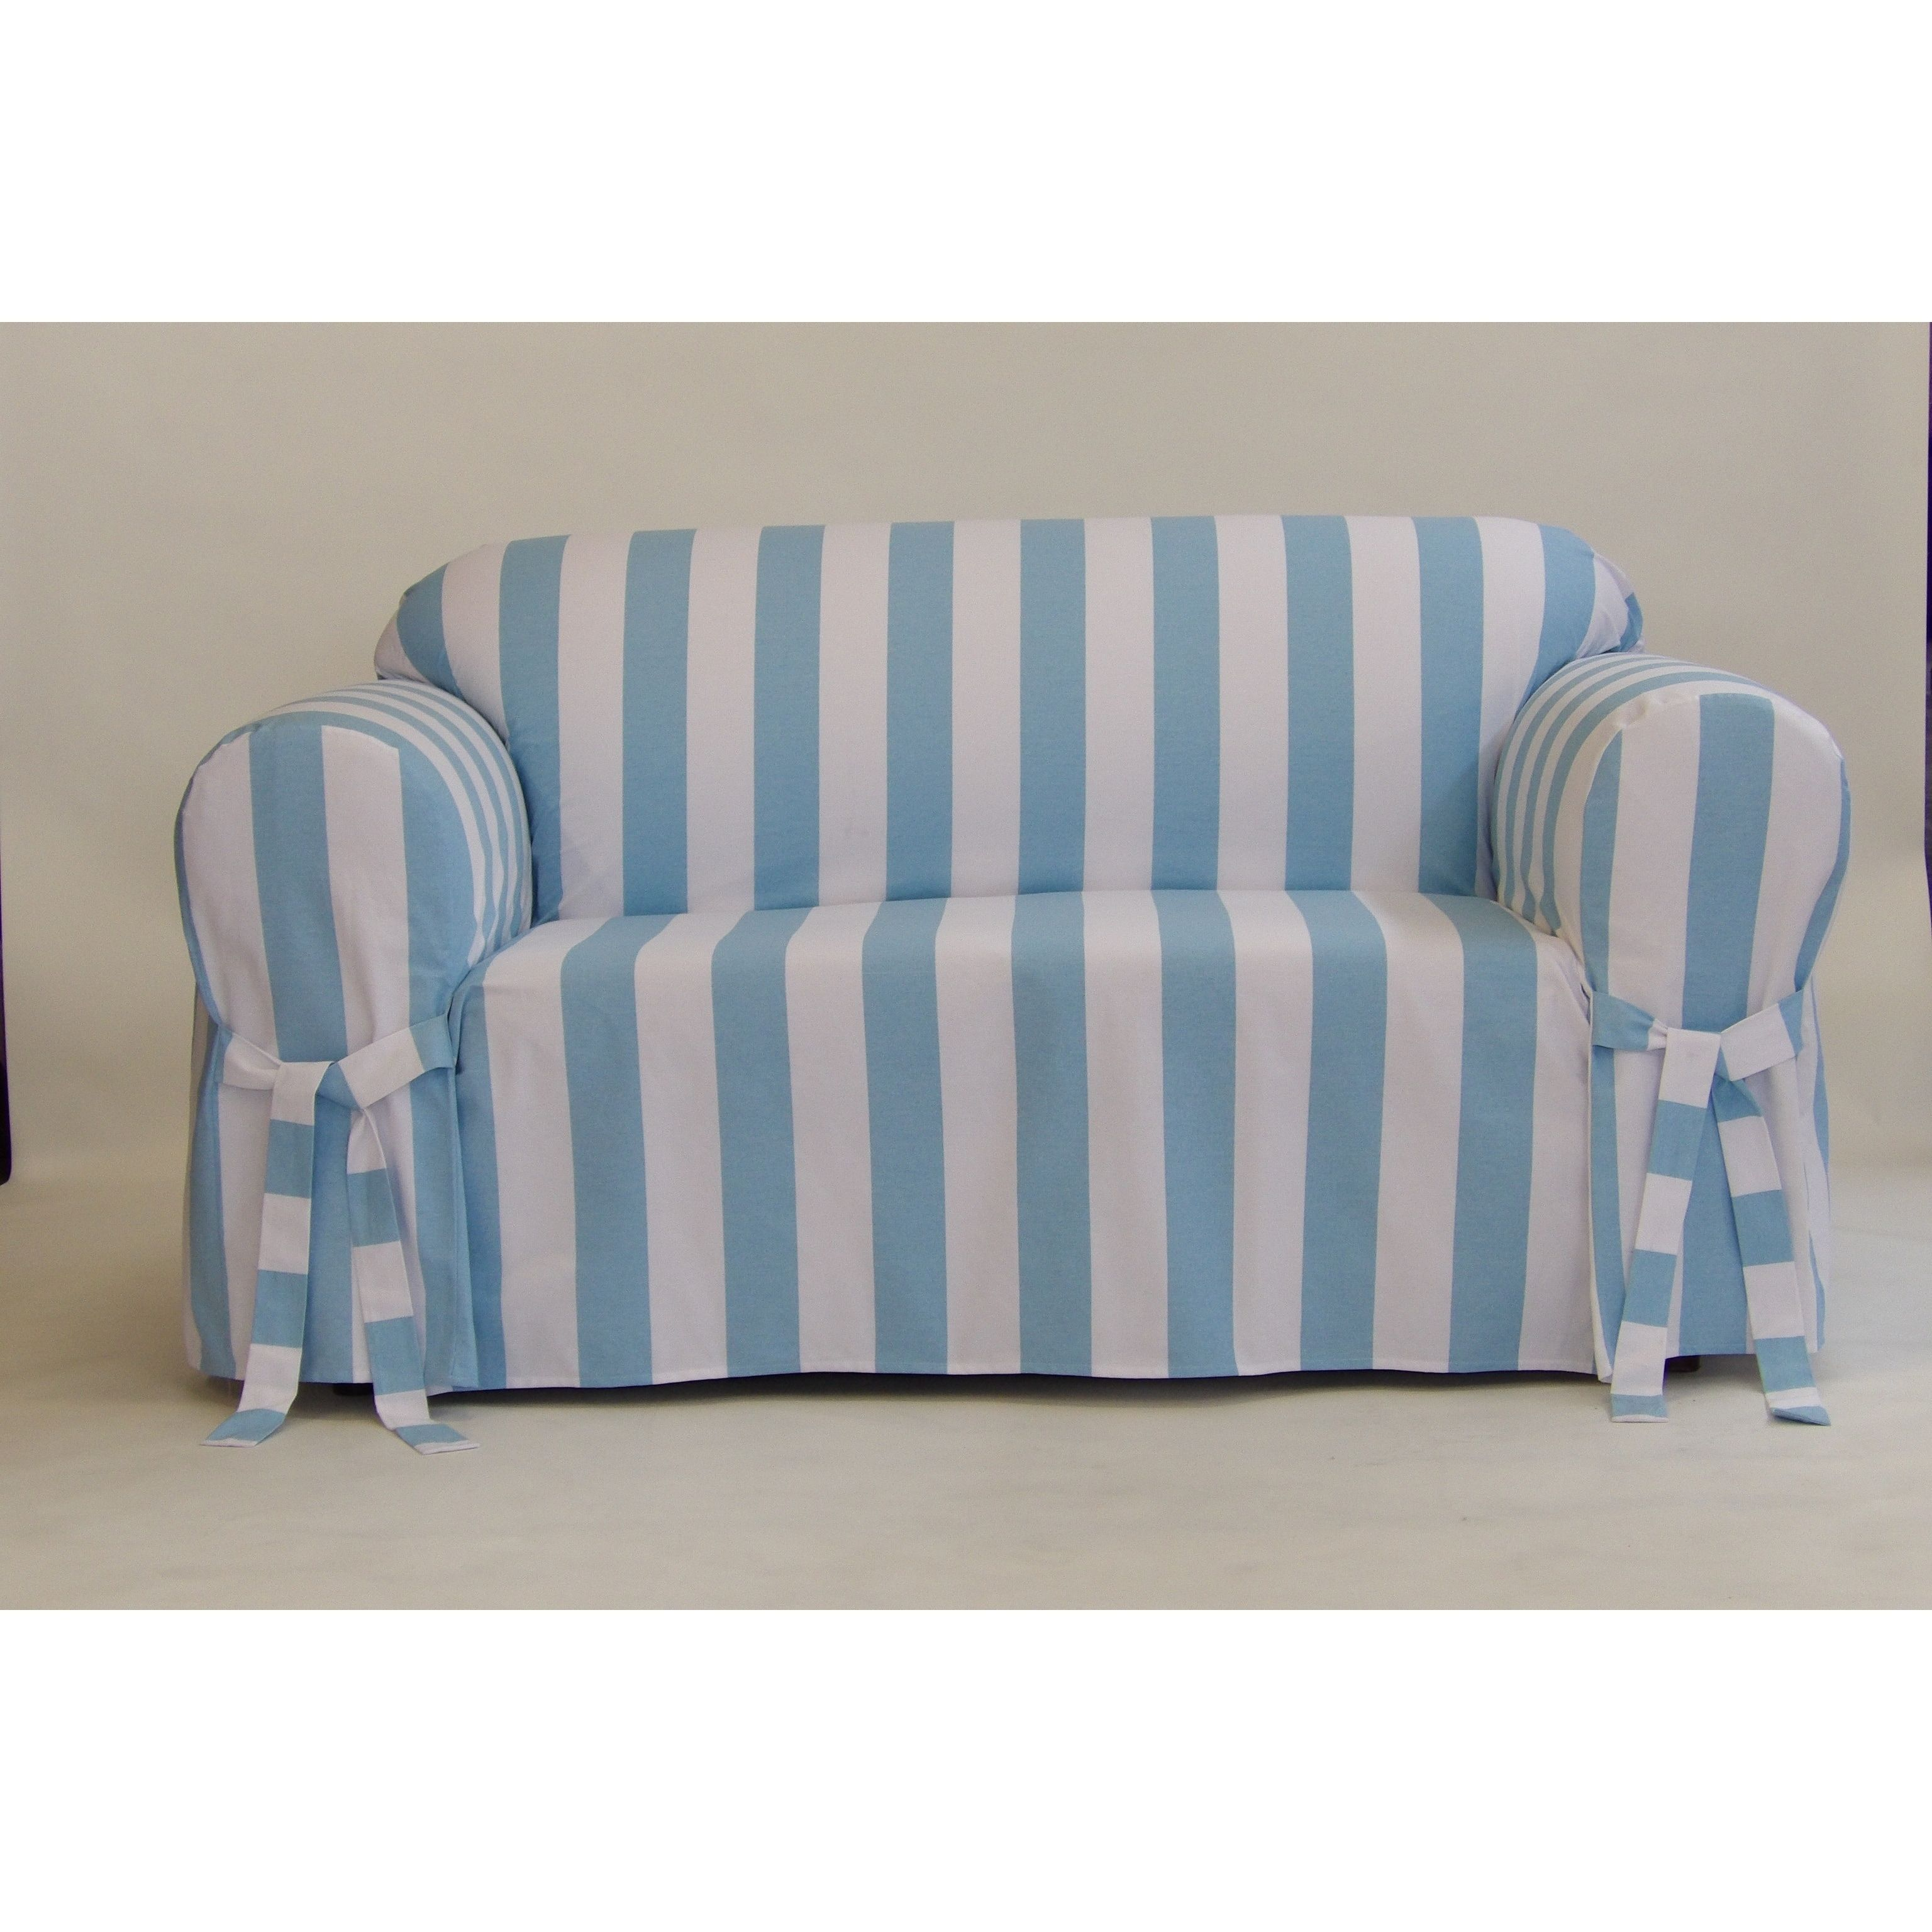 Overstock Com Online Shopping Bedding Furniture Electronics Jewelry Clothing More In 2020 Slipcovered Sofa Cushions On Sofa Slipcovers